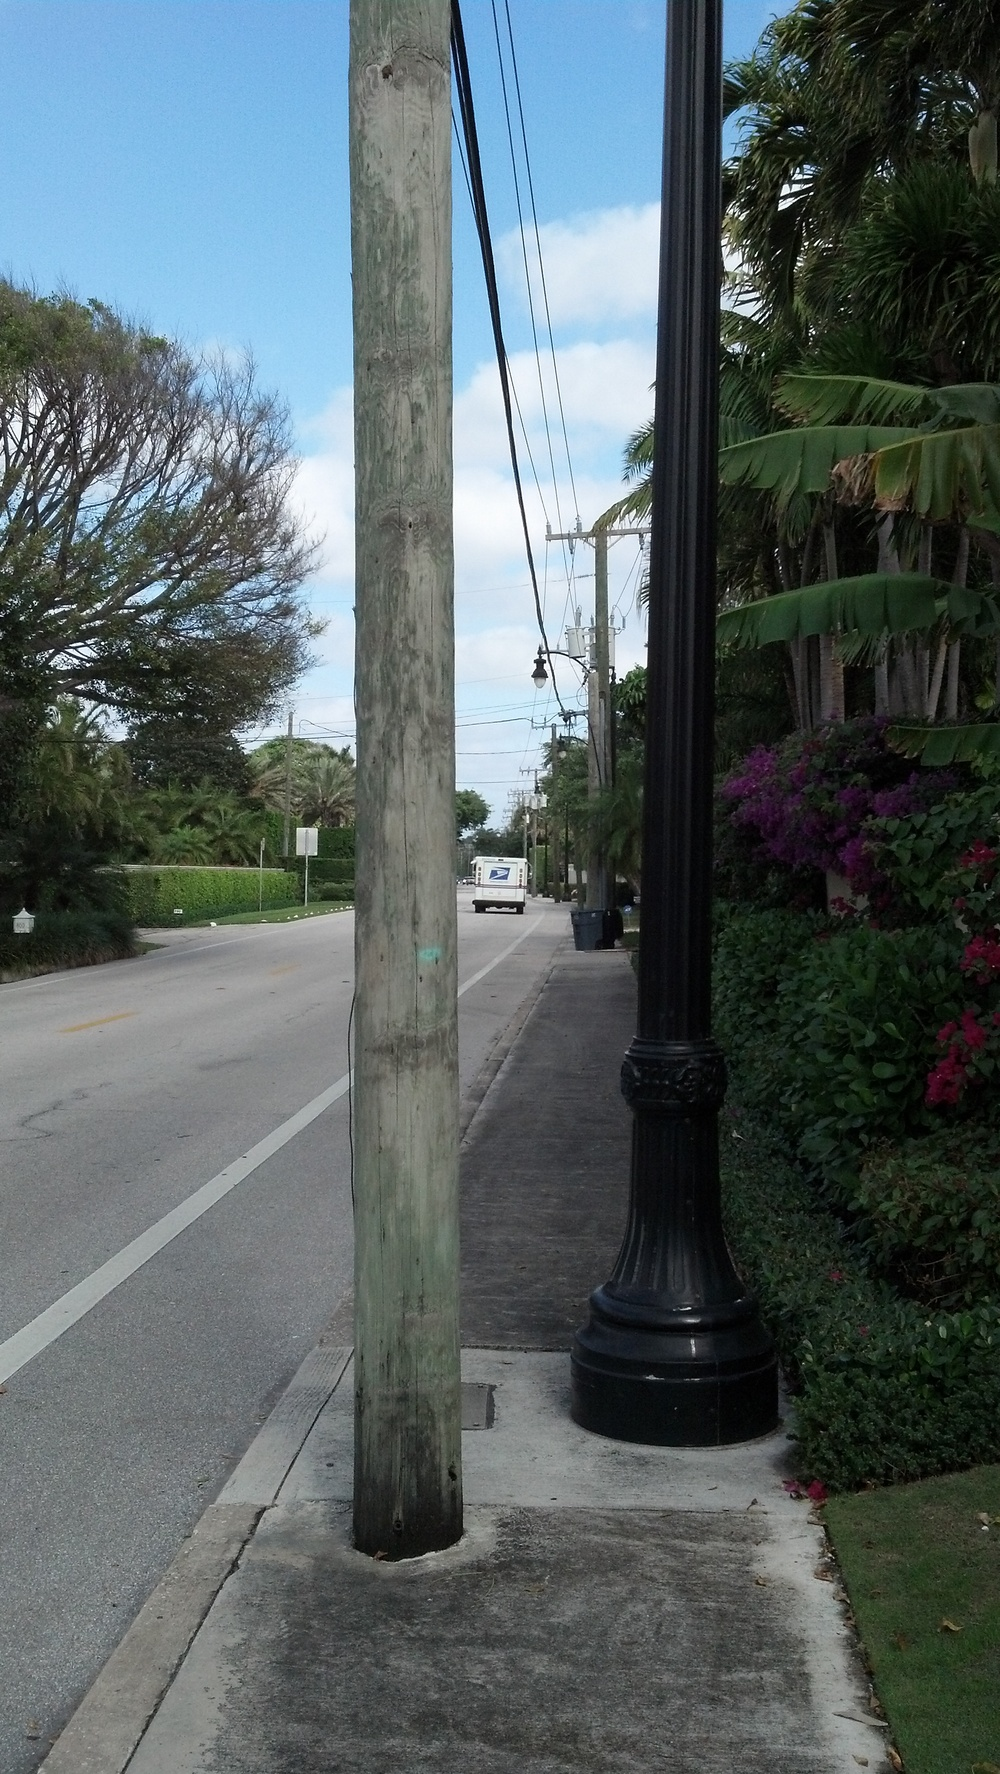 2012 12.31 Palm Beach walkability.jpg